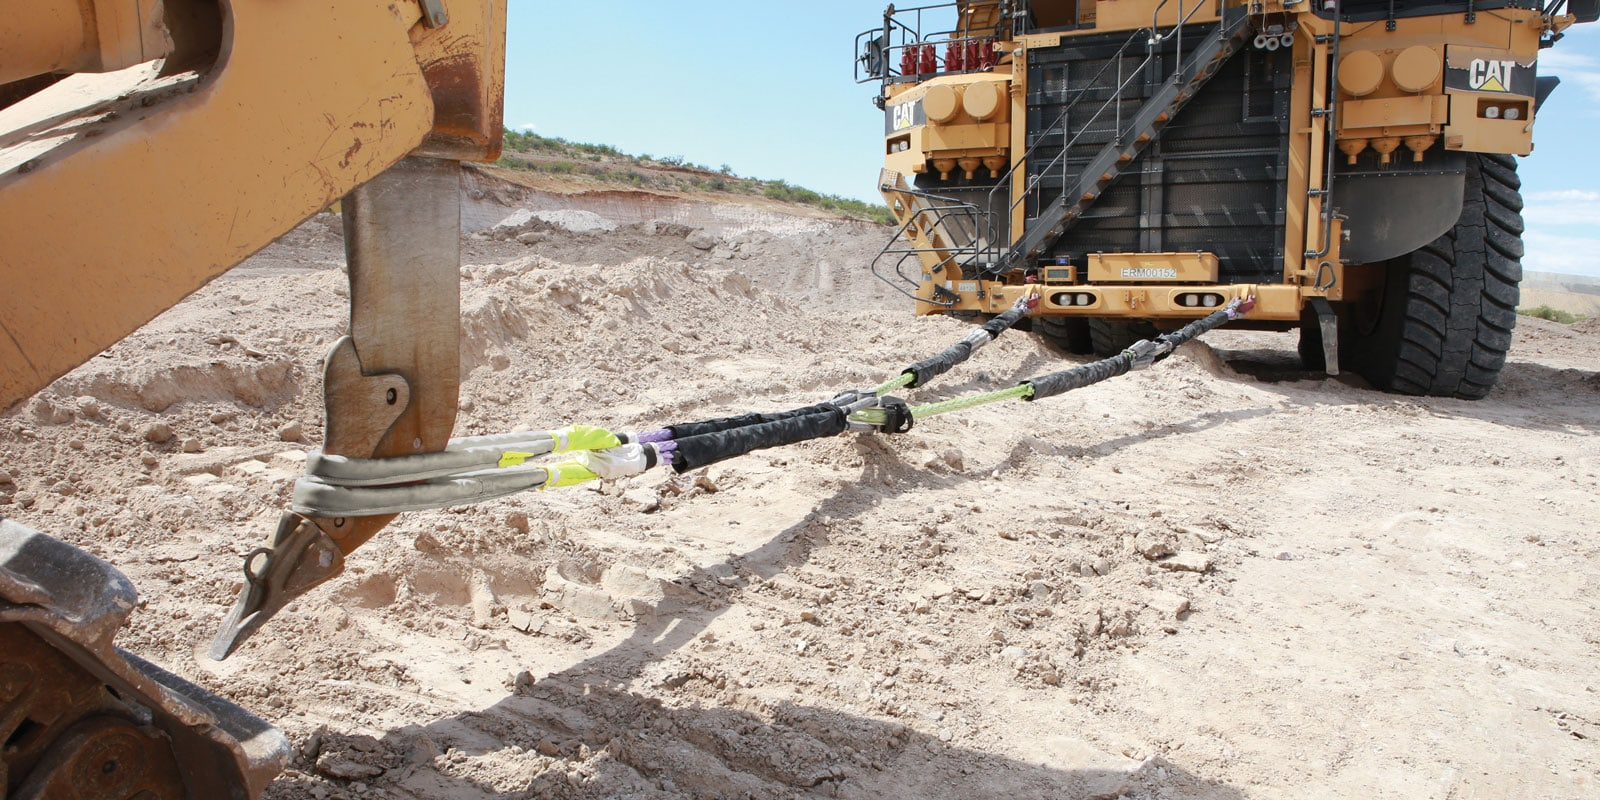 Cortland synthetic rope recovery system in action